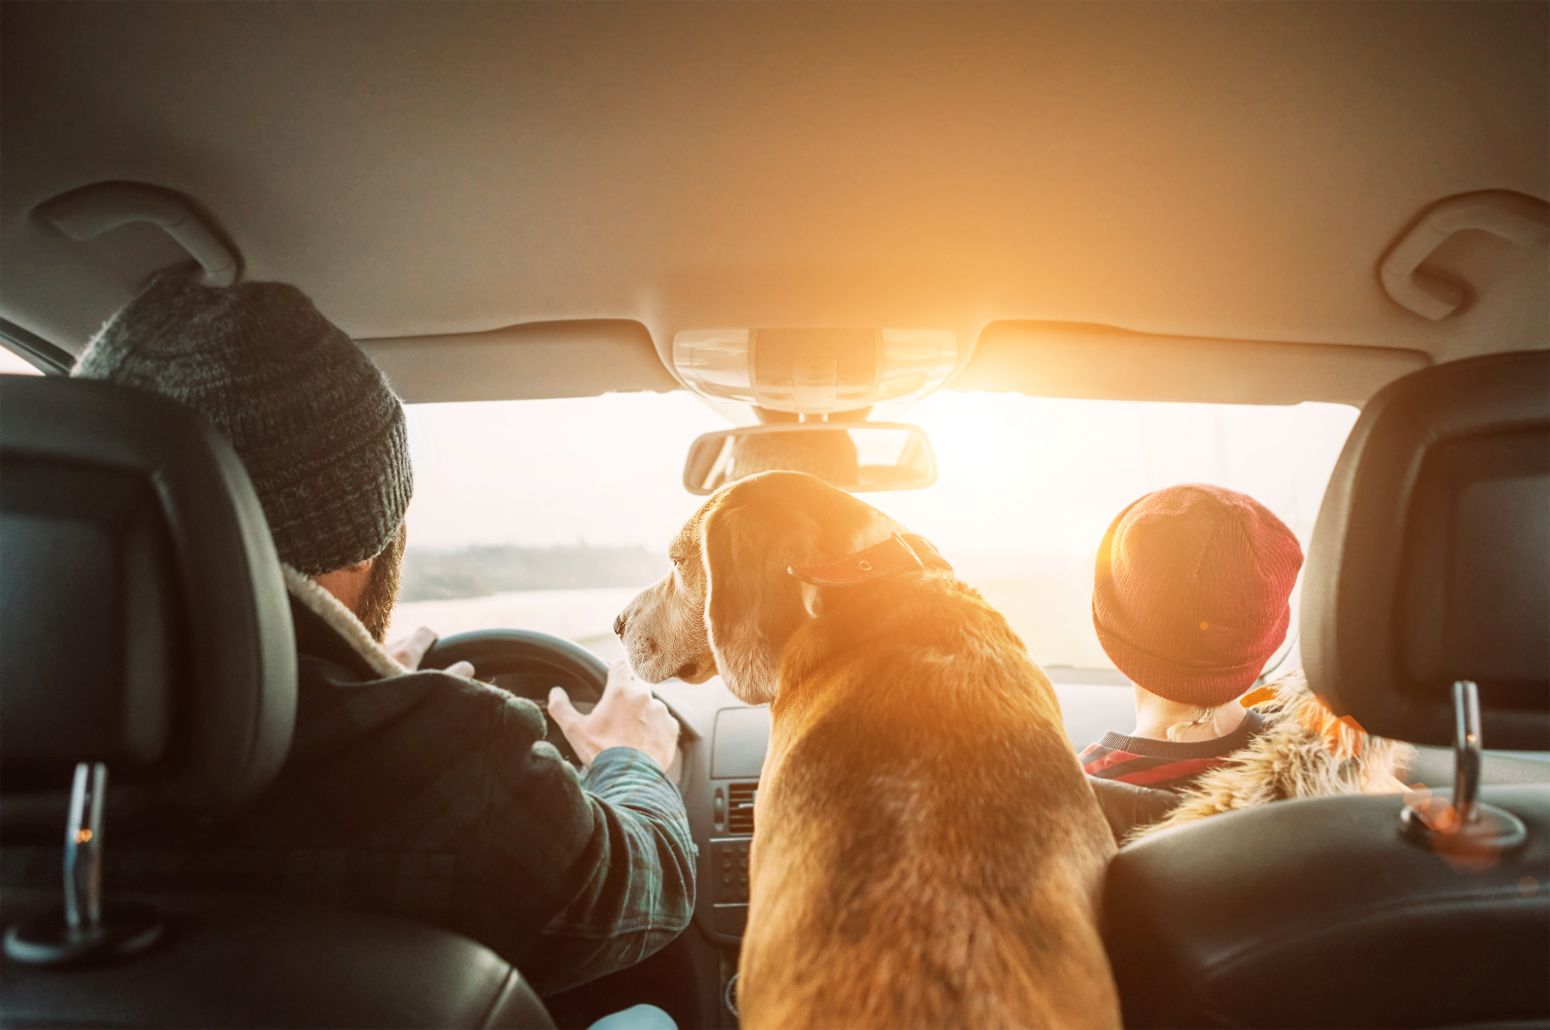 Helpful Safety Tips for Traveling with Pets